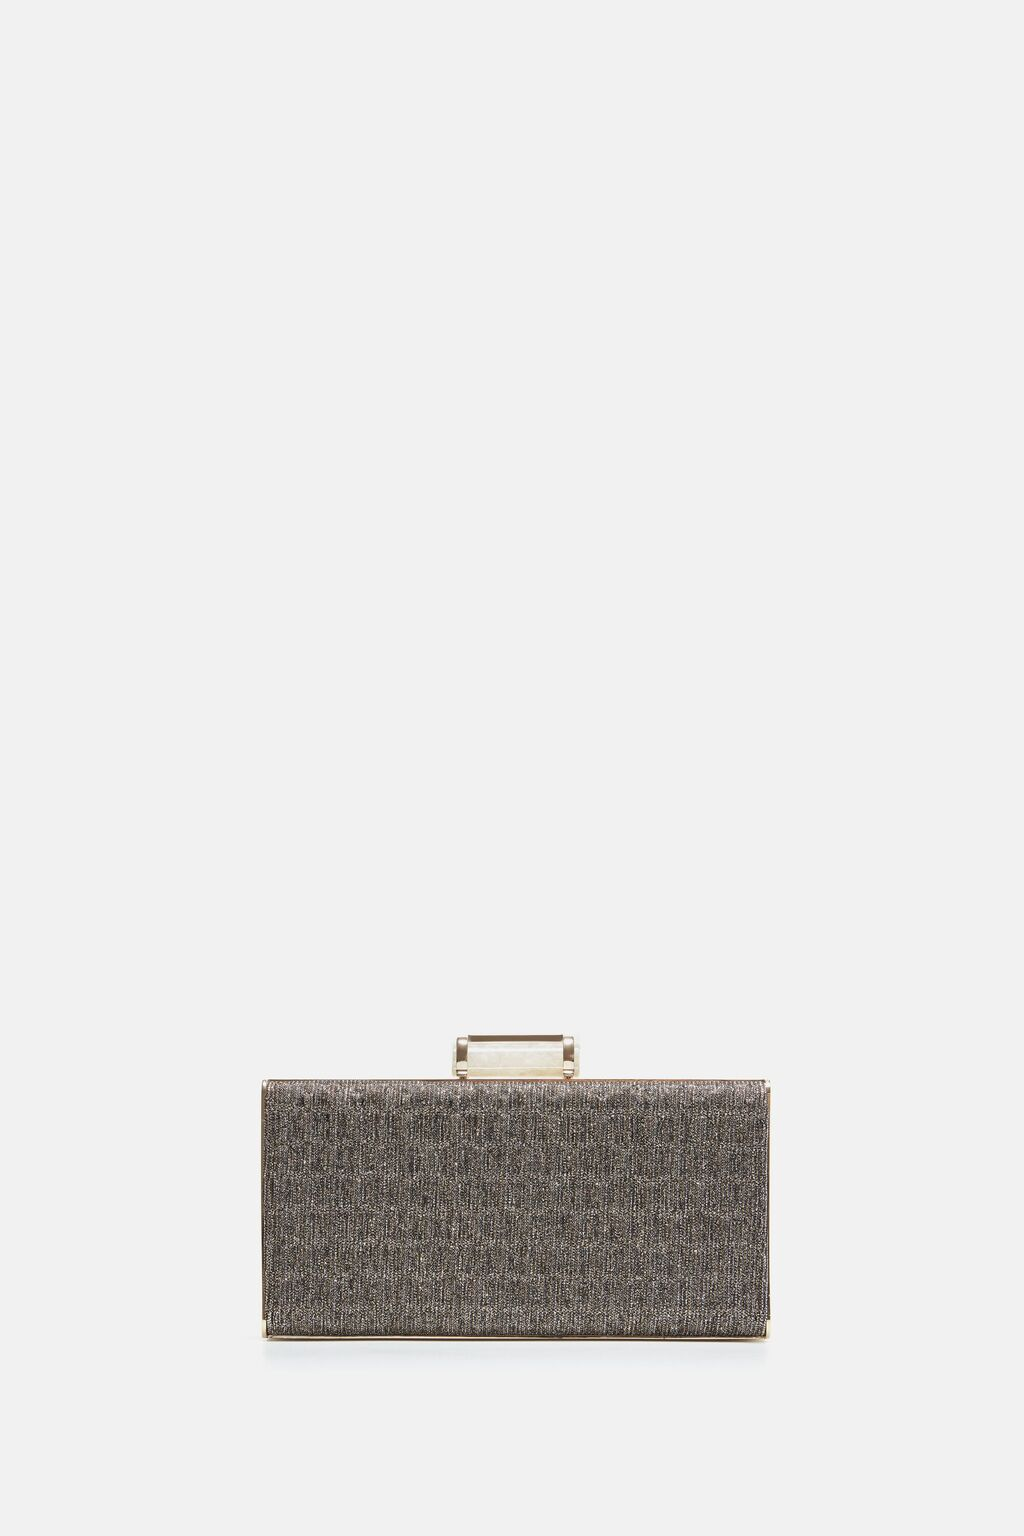 Scala Insignia | Small clutch